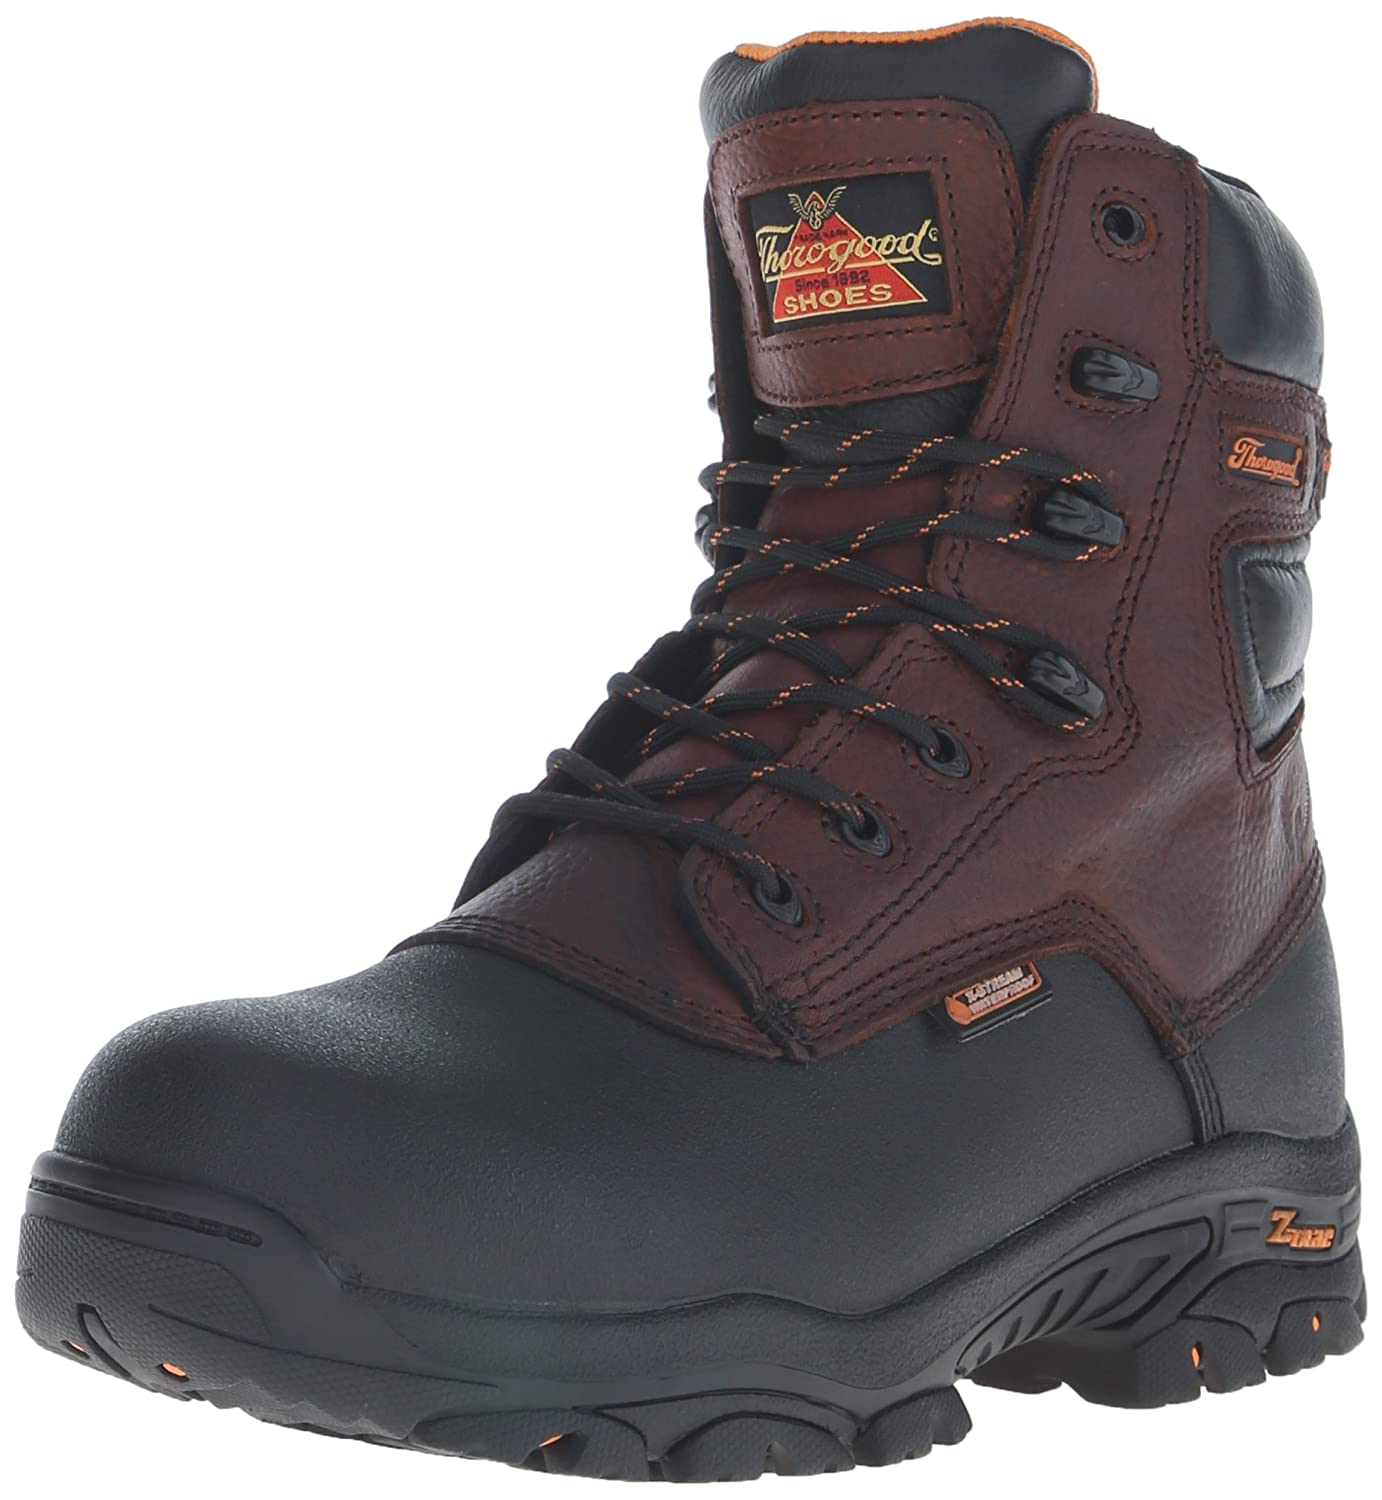 e83b1311665 Thorogood Men's Z - Trac Waterproof Safety Toe Lace-Up Boot